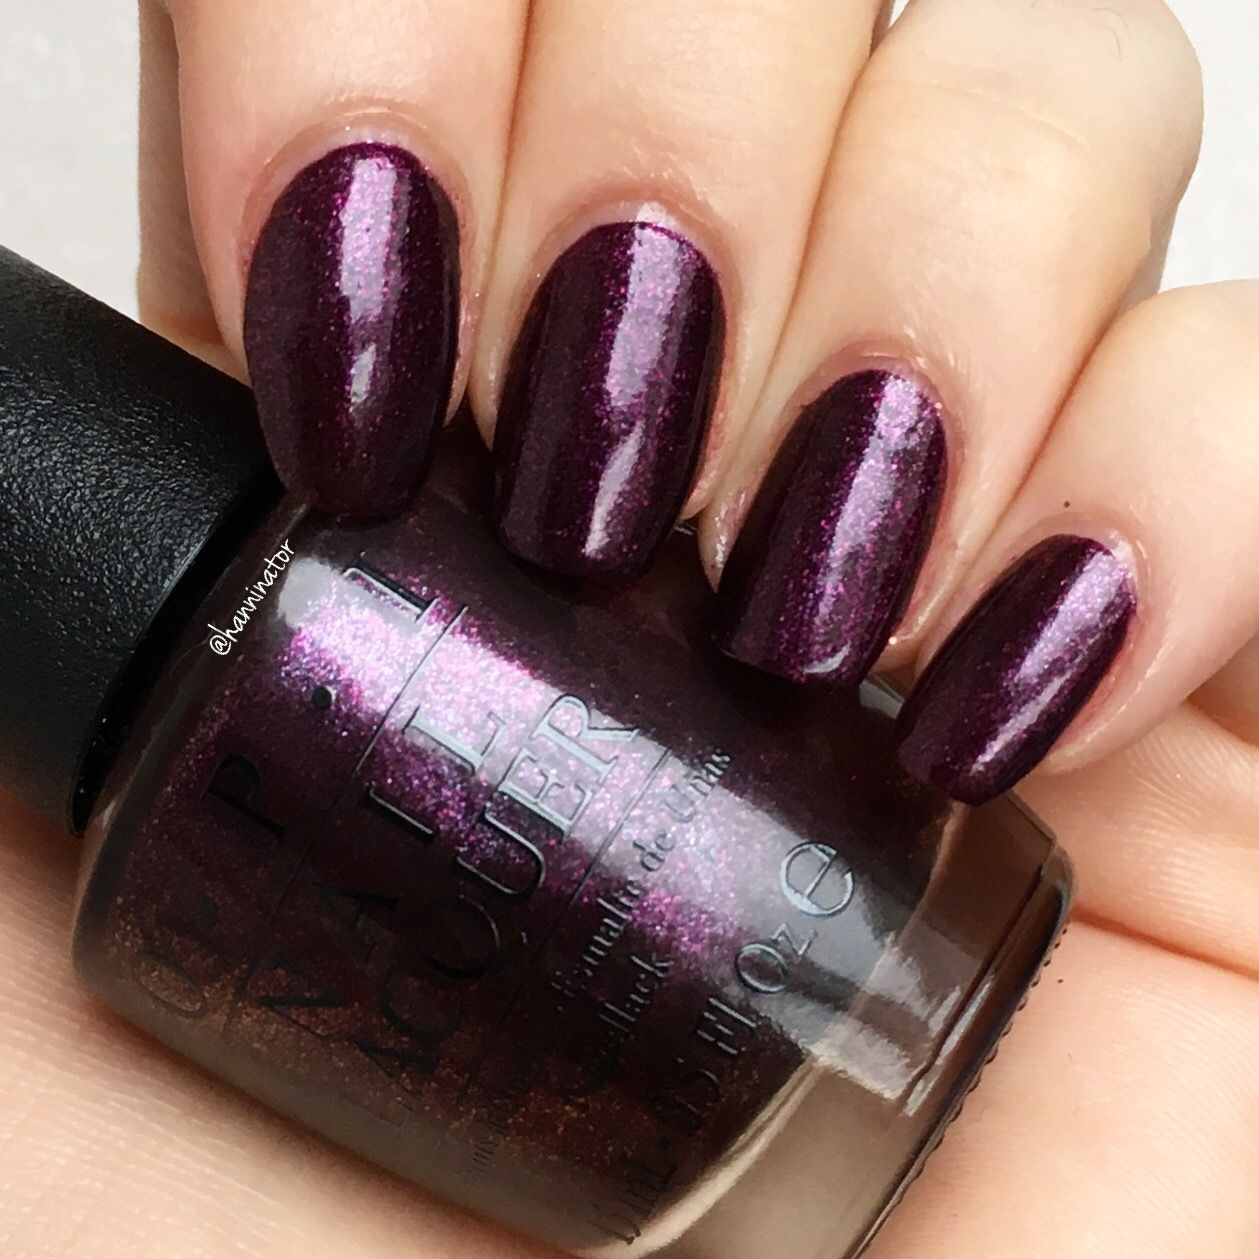 Rich Amp Brazilian Opi Breakfast At Tiffany S Collection Solid Color Nails Nails Nail Colors